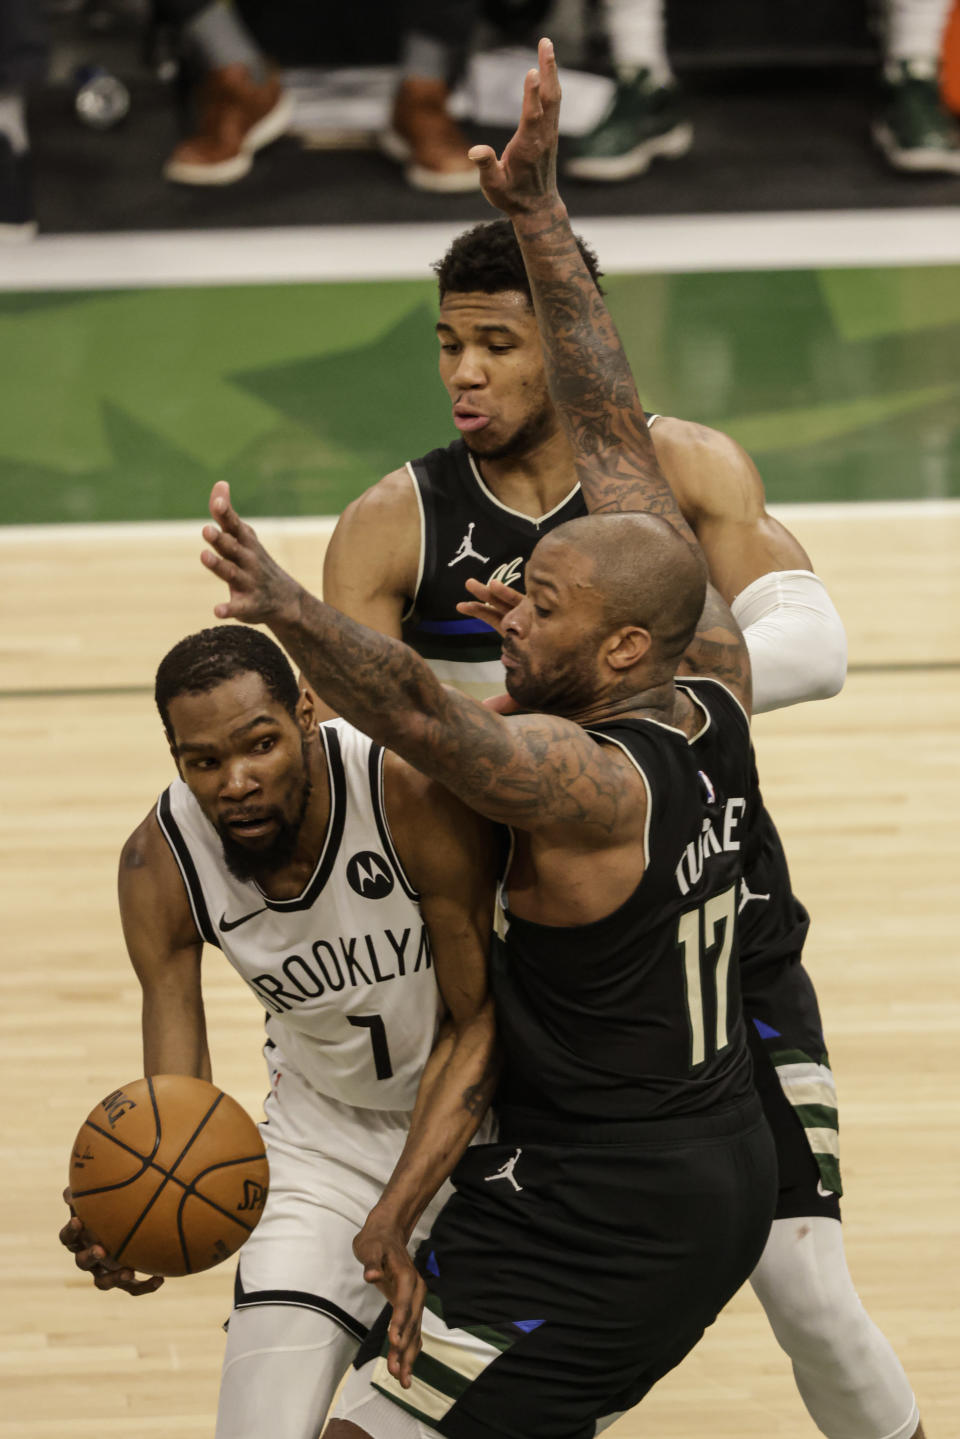 Brooklyn Nets' Kevin Durant (7) is guarded by Milwaukee Bucks forward P.J. Tucker (17) during the second half of Game 6 of a second-round NBA basketball playoff series Thursday, June 17, 2021, in Milwaukee. (AP Photo/Jeffrey Phelps)